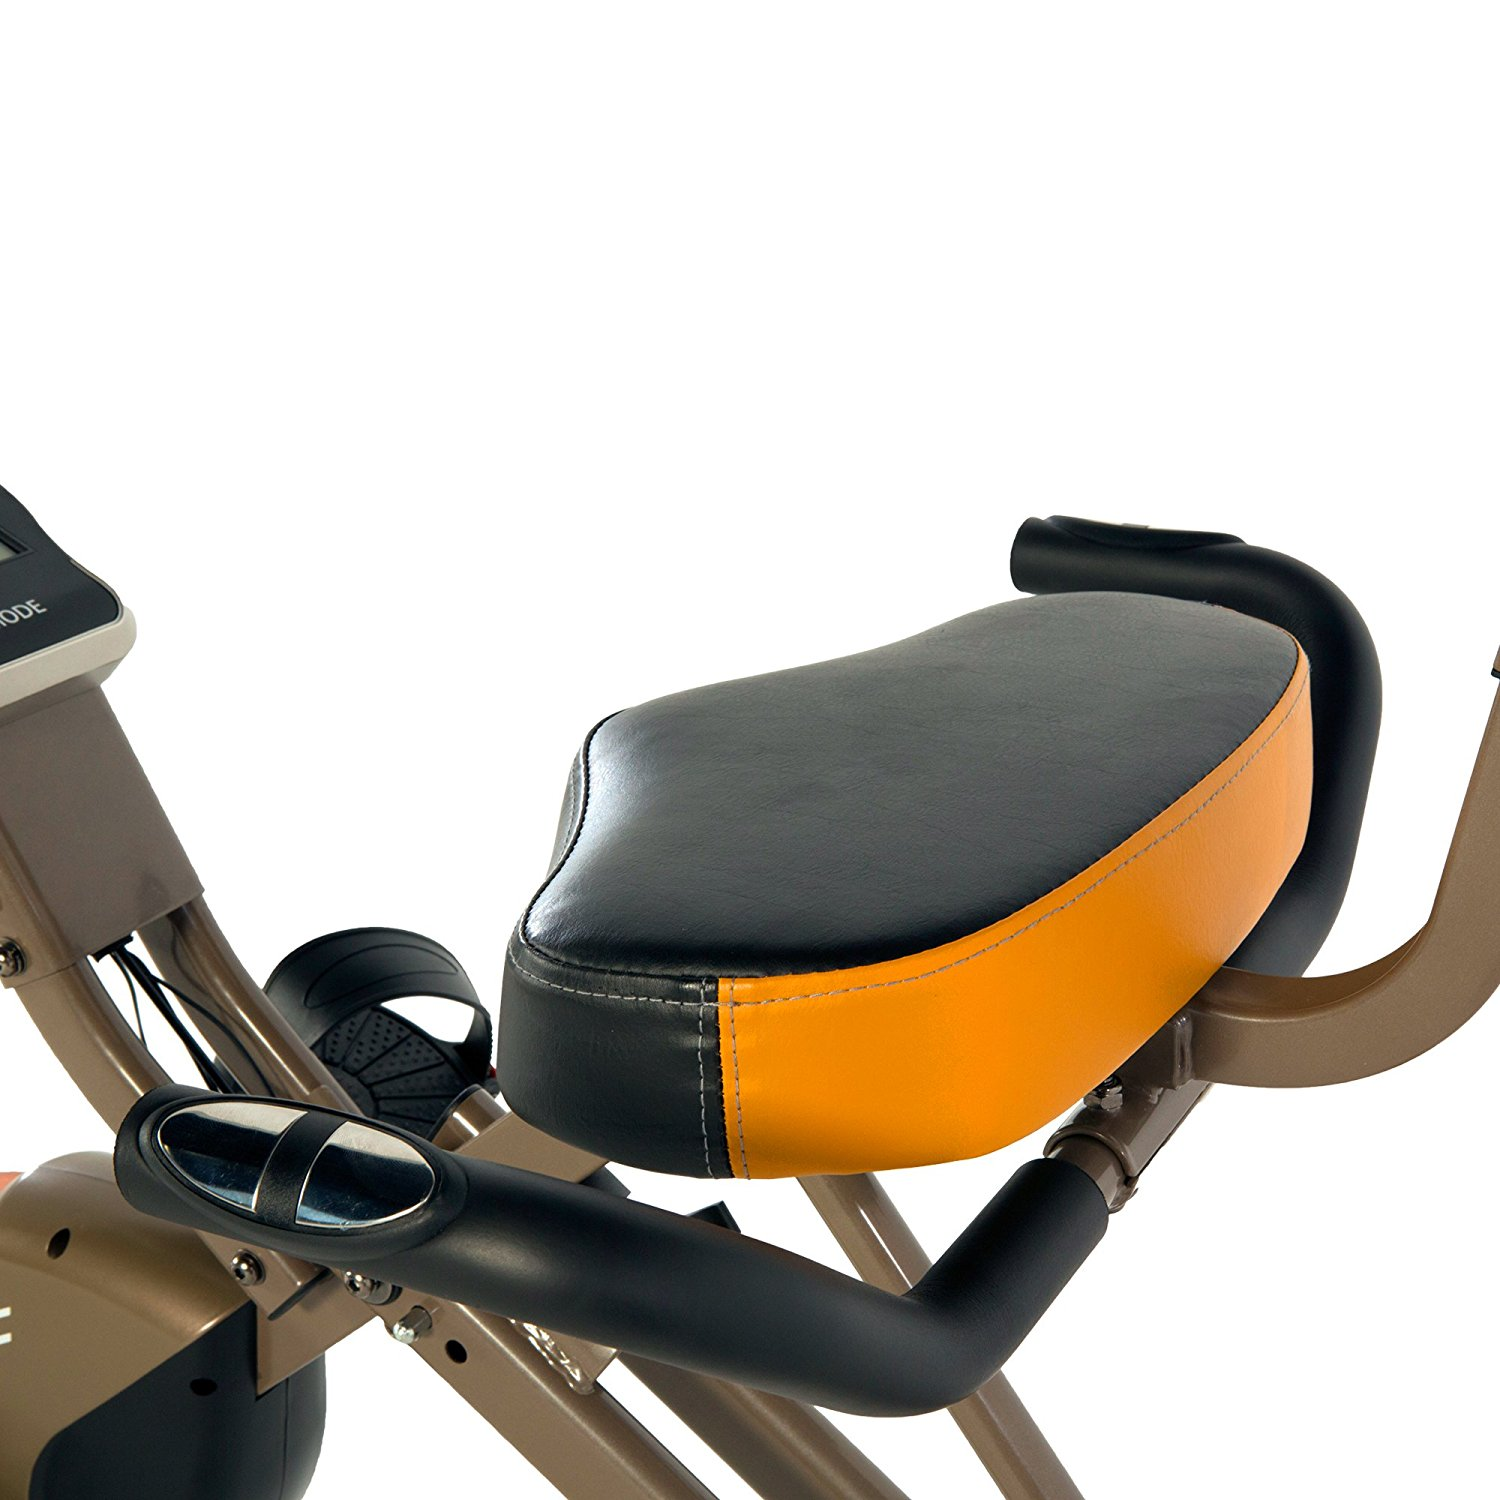 Exerpeutic GOLD 525XLR recumbent bike review